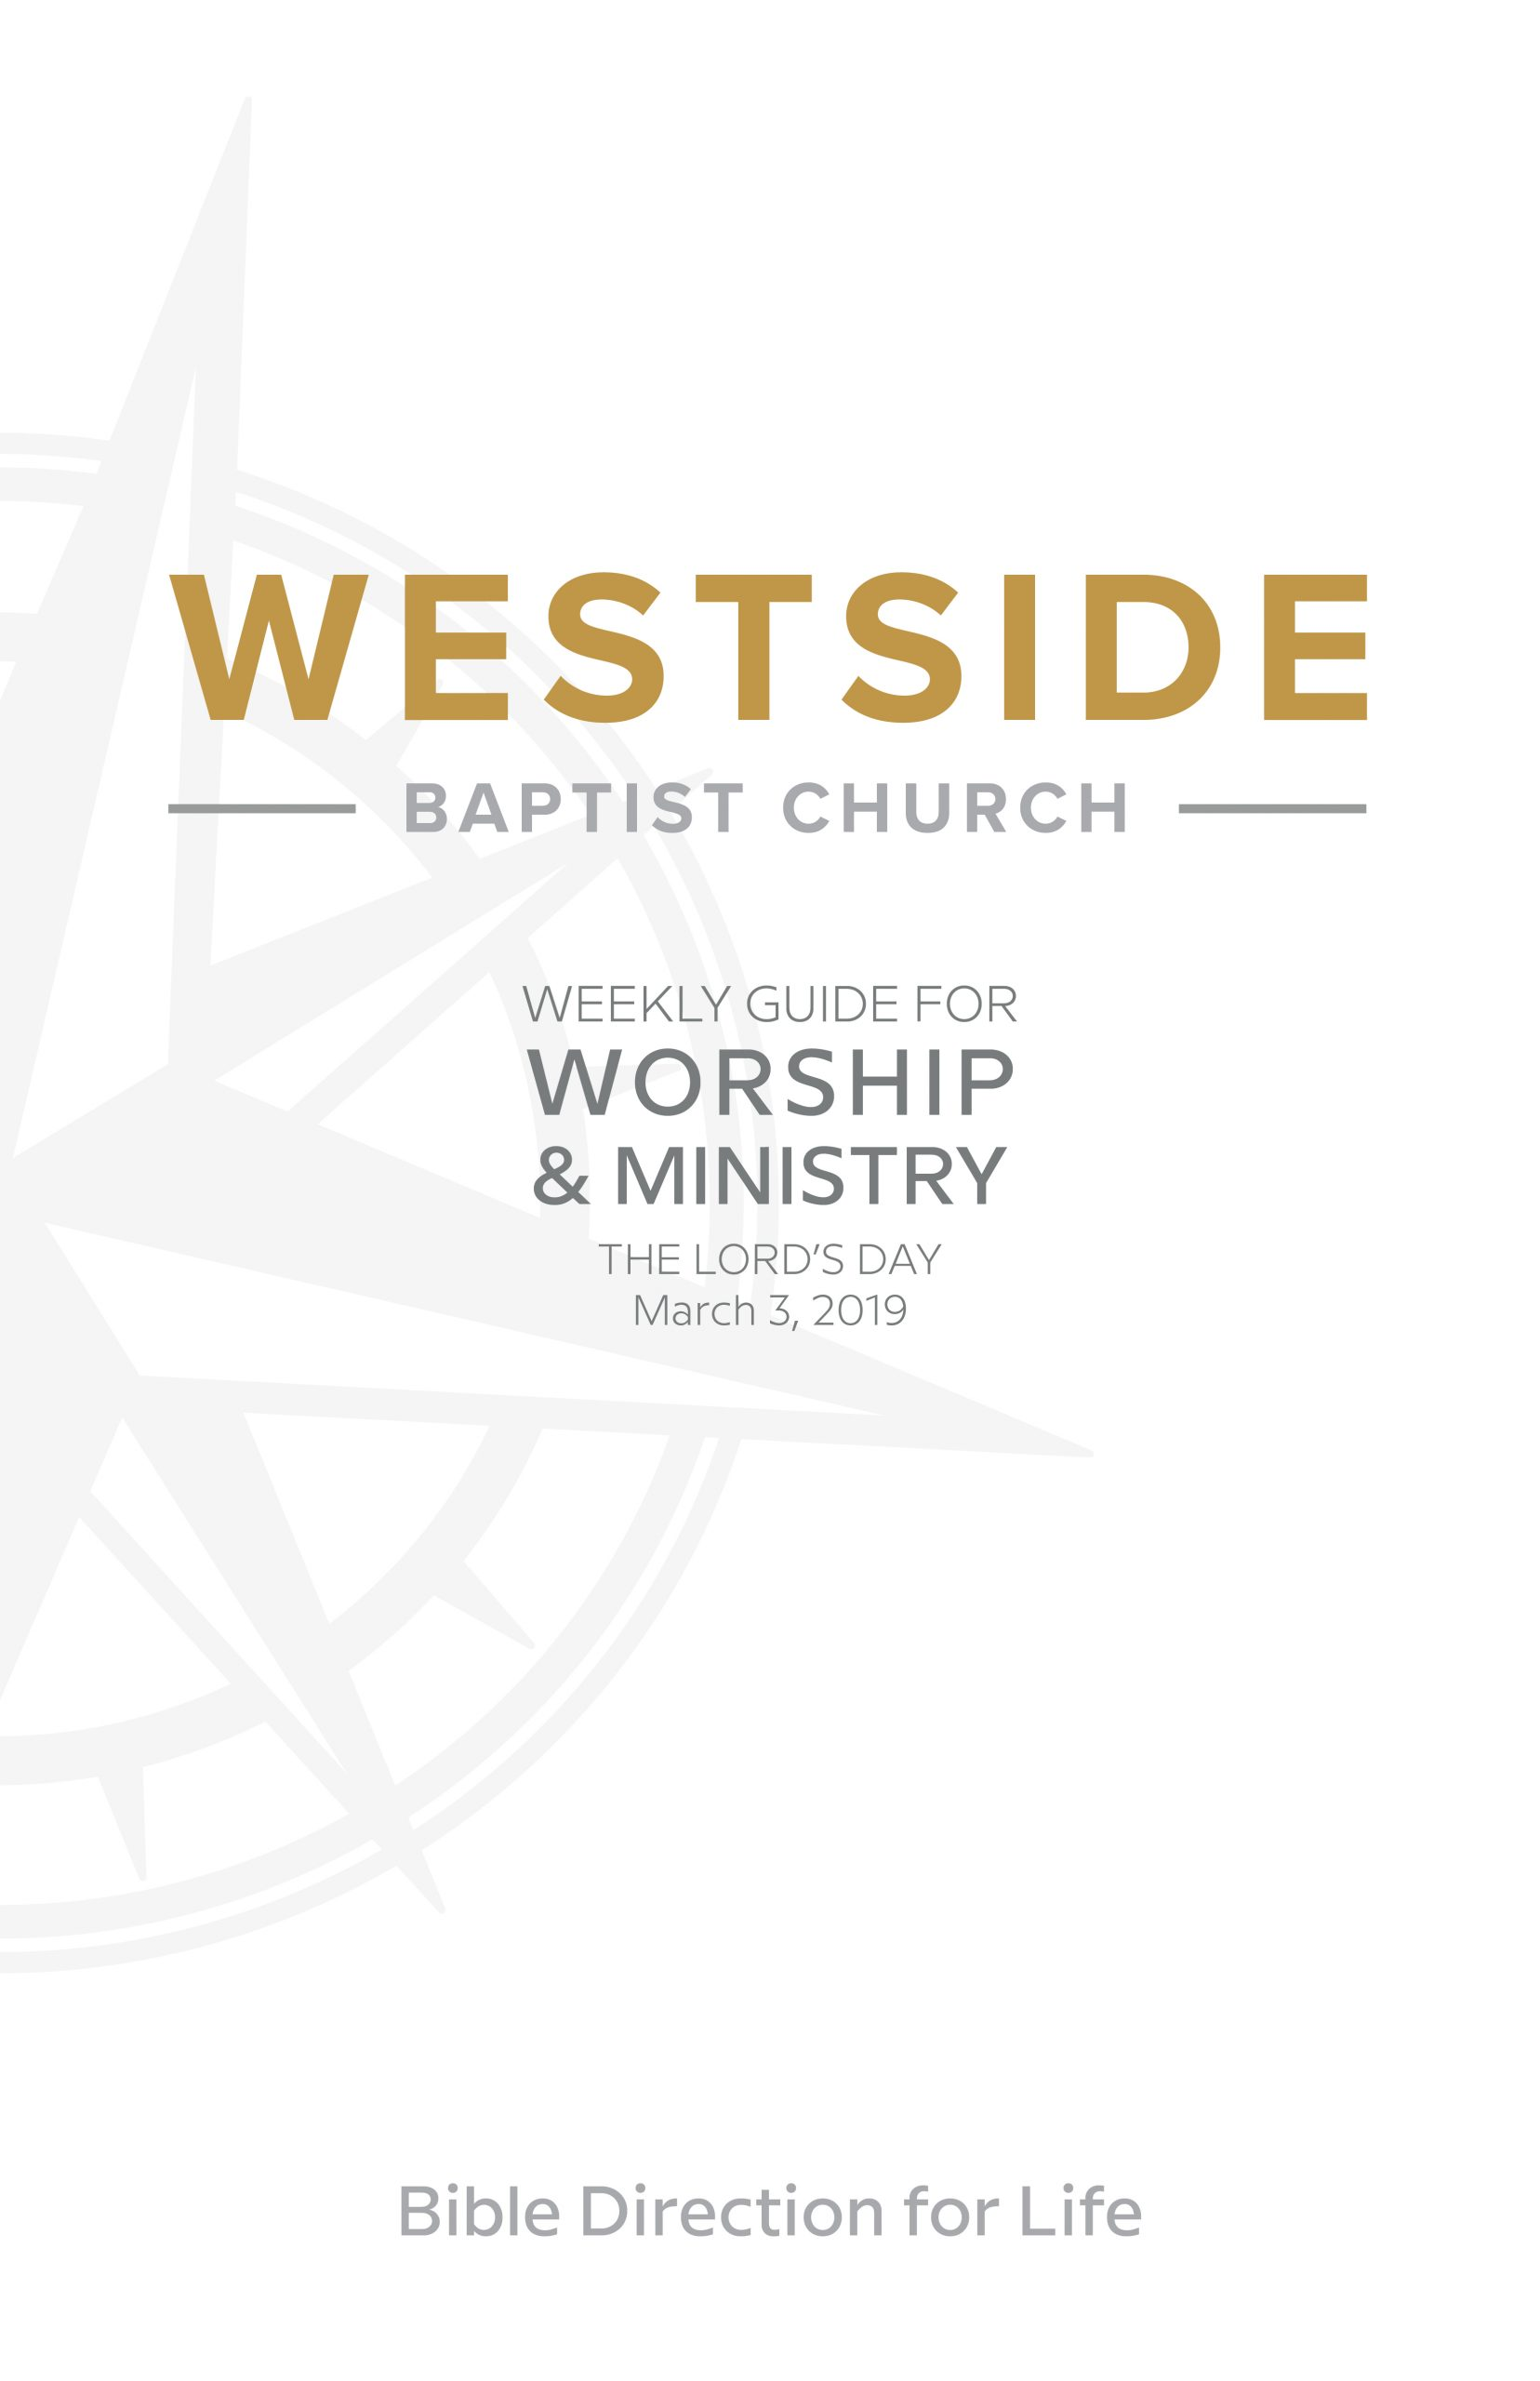 Weekly Guide for Worship and Ministry—March 3